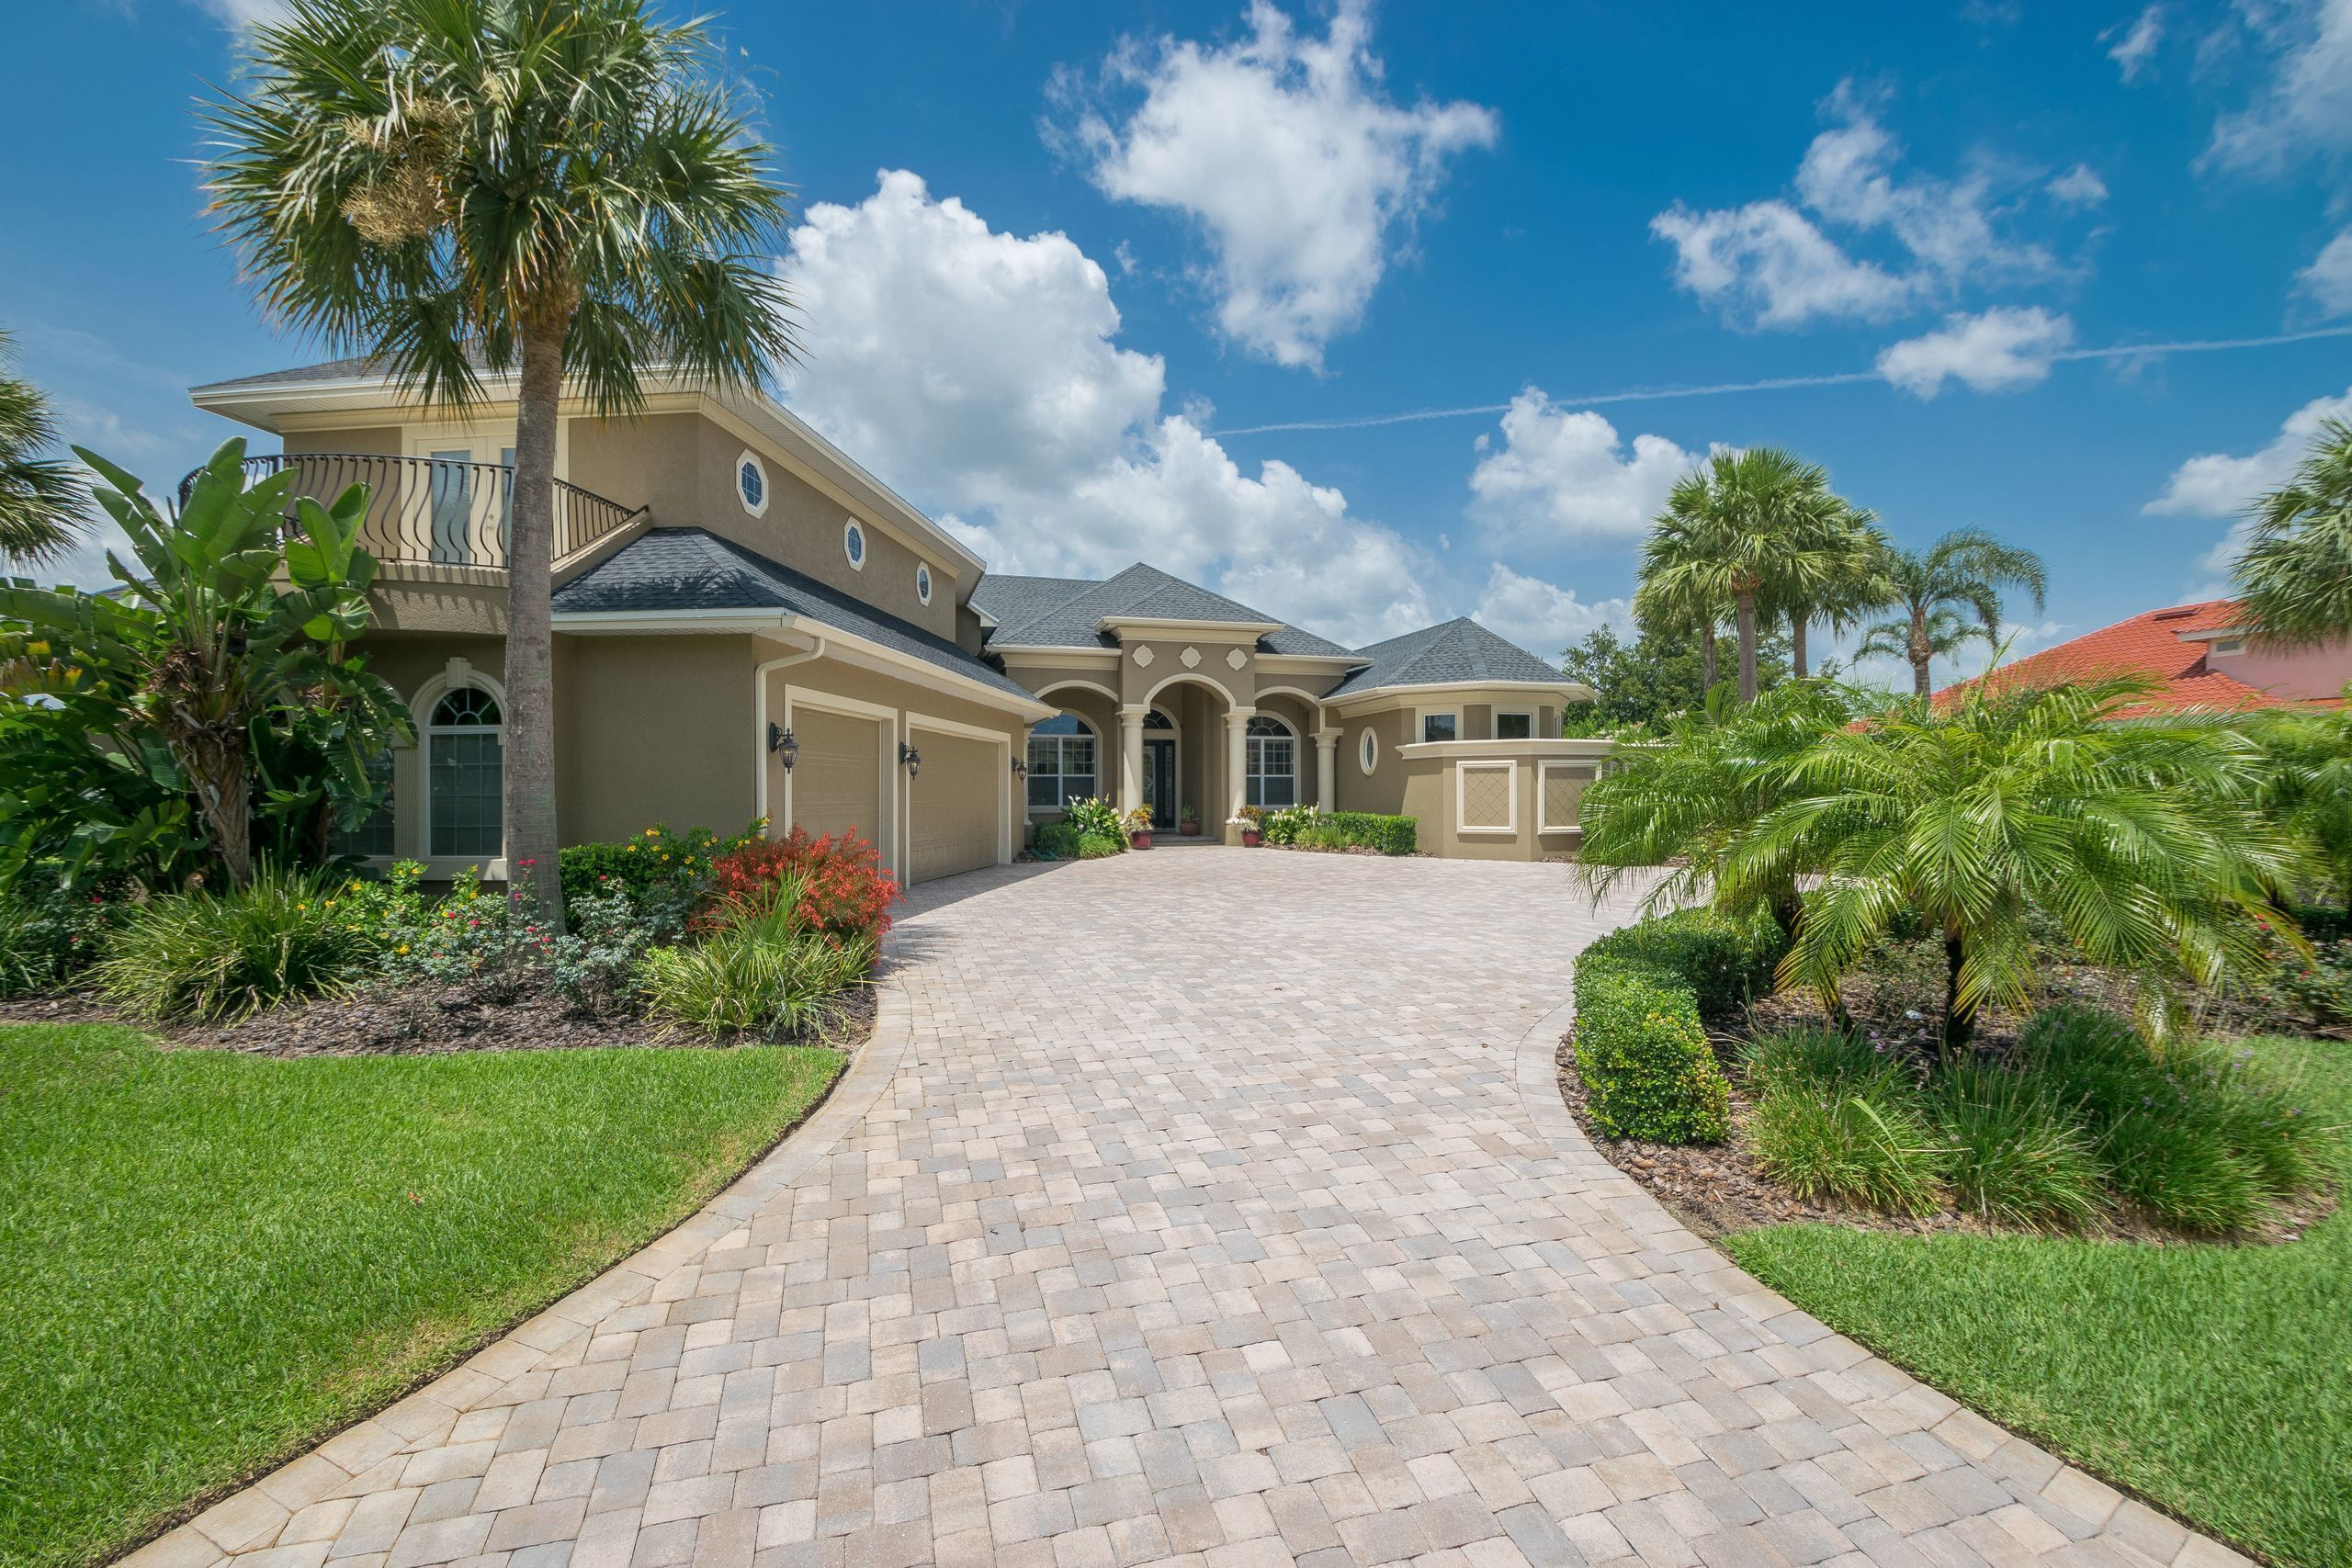 New Winter Haven Luxury Real Estate Listing The Stones